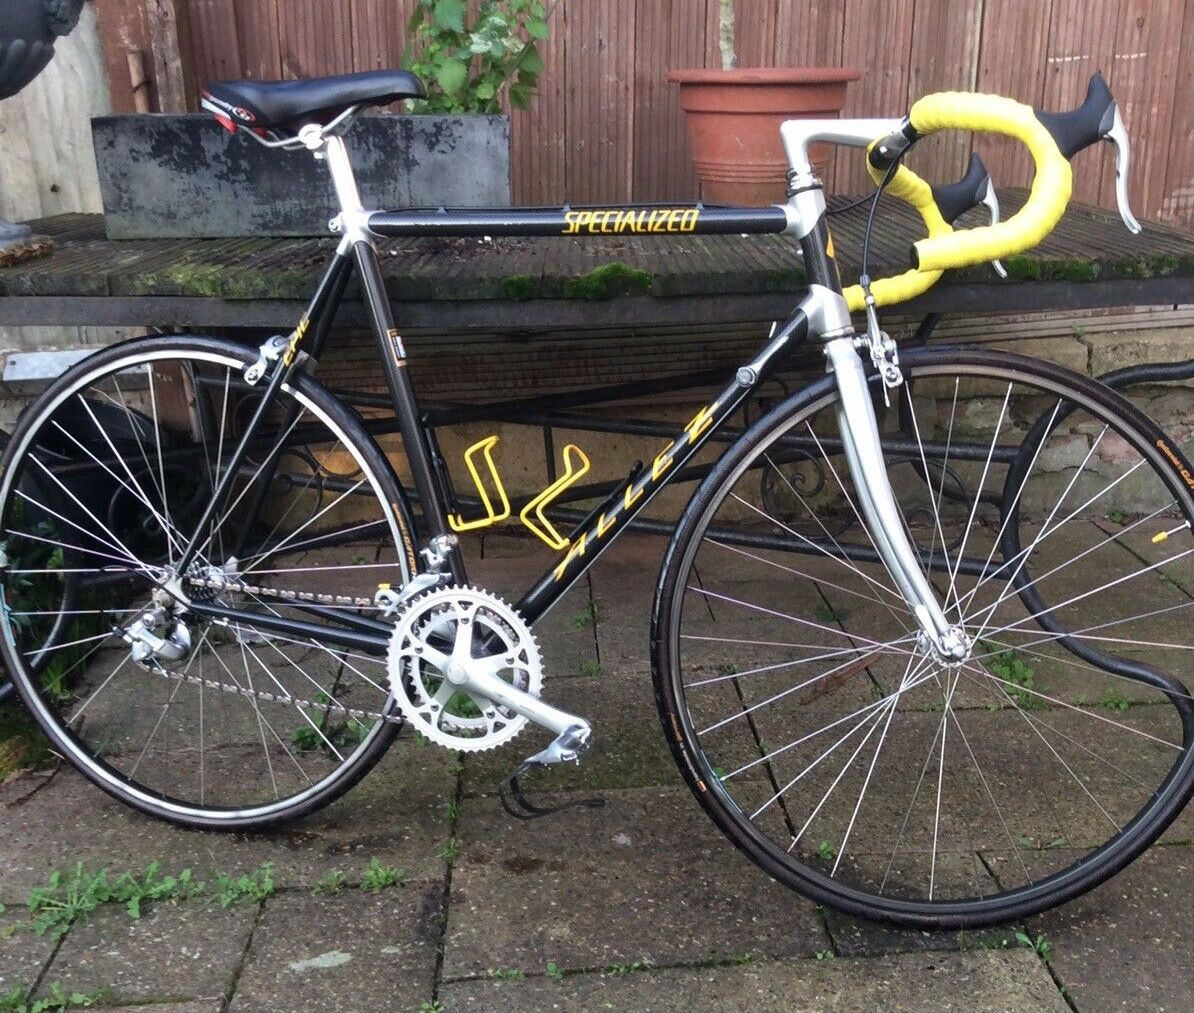 David Arthur On Twitter Nice 1991 Specialized Allez Epic For Sale Looks In Great Condition Https T Co Zql0hgavpw